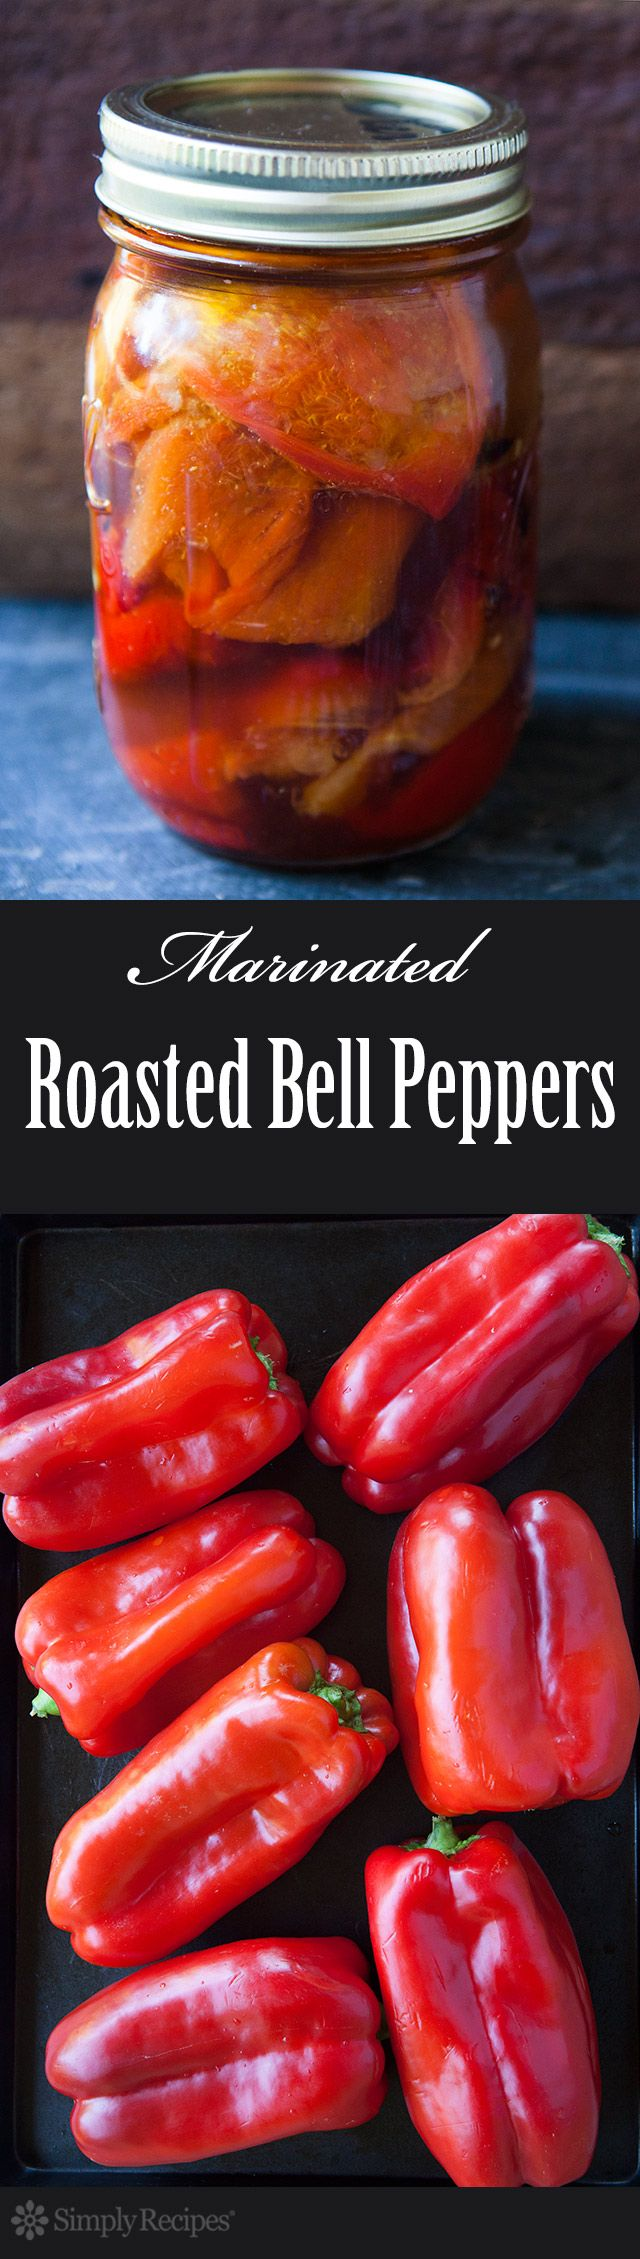 Marinated Roasted Red Bell Peppers ~ Red bell peppers, charred and roasted, preserved in vinegar, lemon, garlic, oil marinade.  Canned roasted bell peppers. ~ SimplyRecipes.com